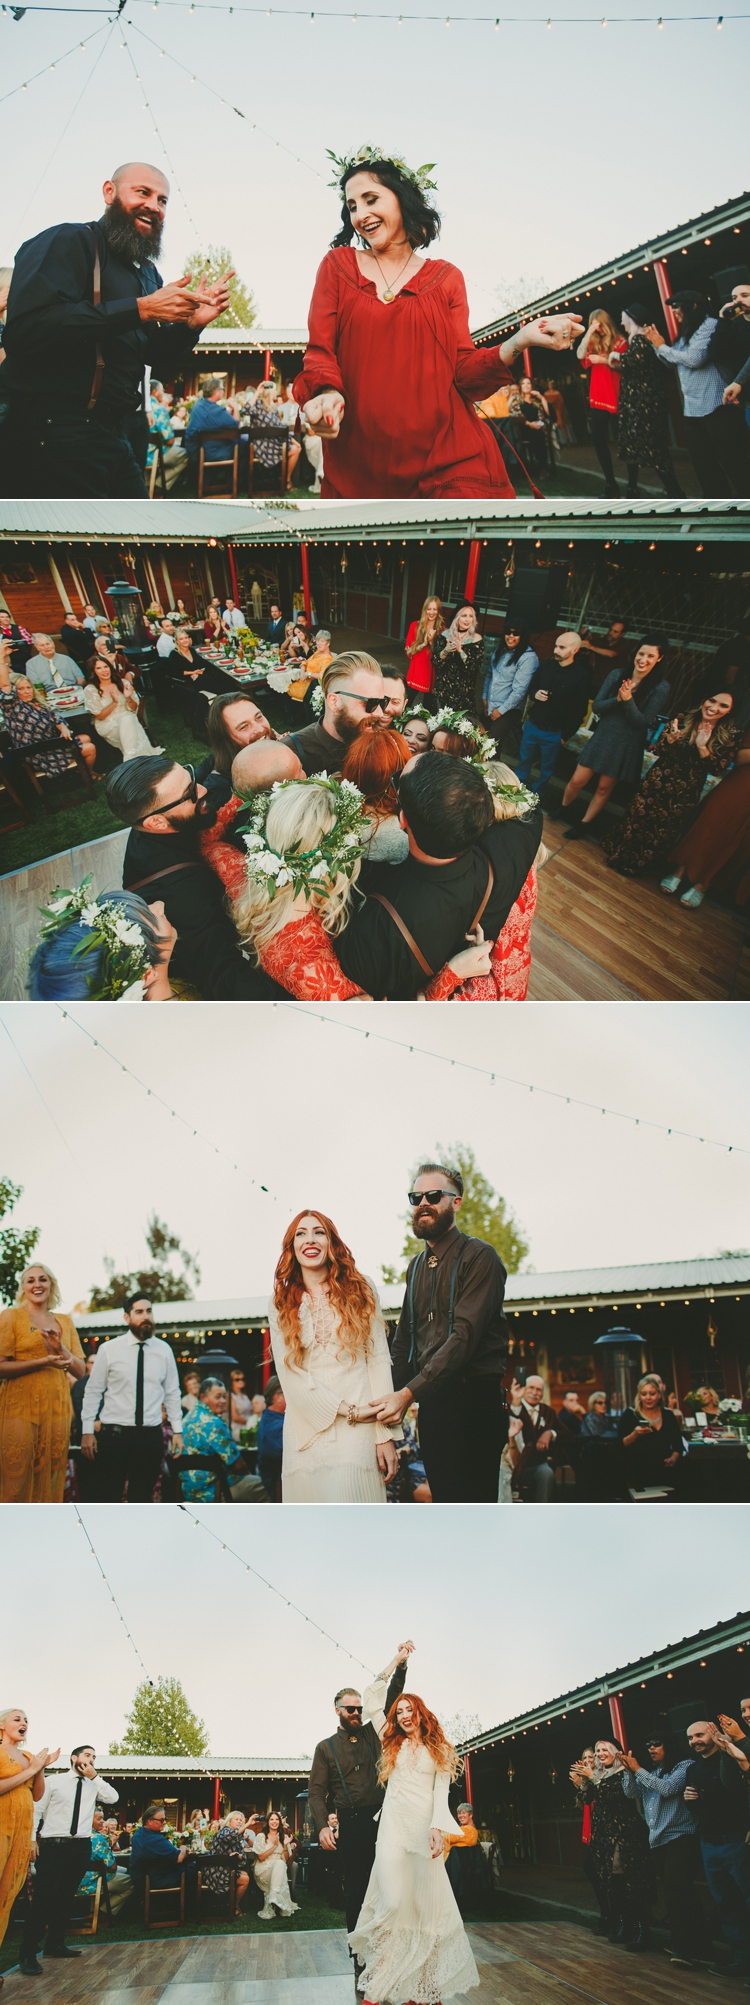 woodstock-inspired-wedding-photos-28